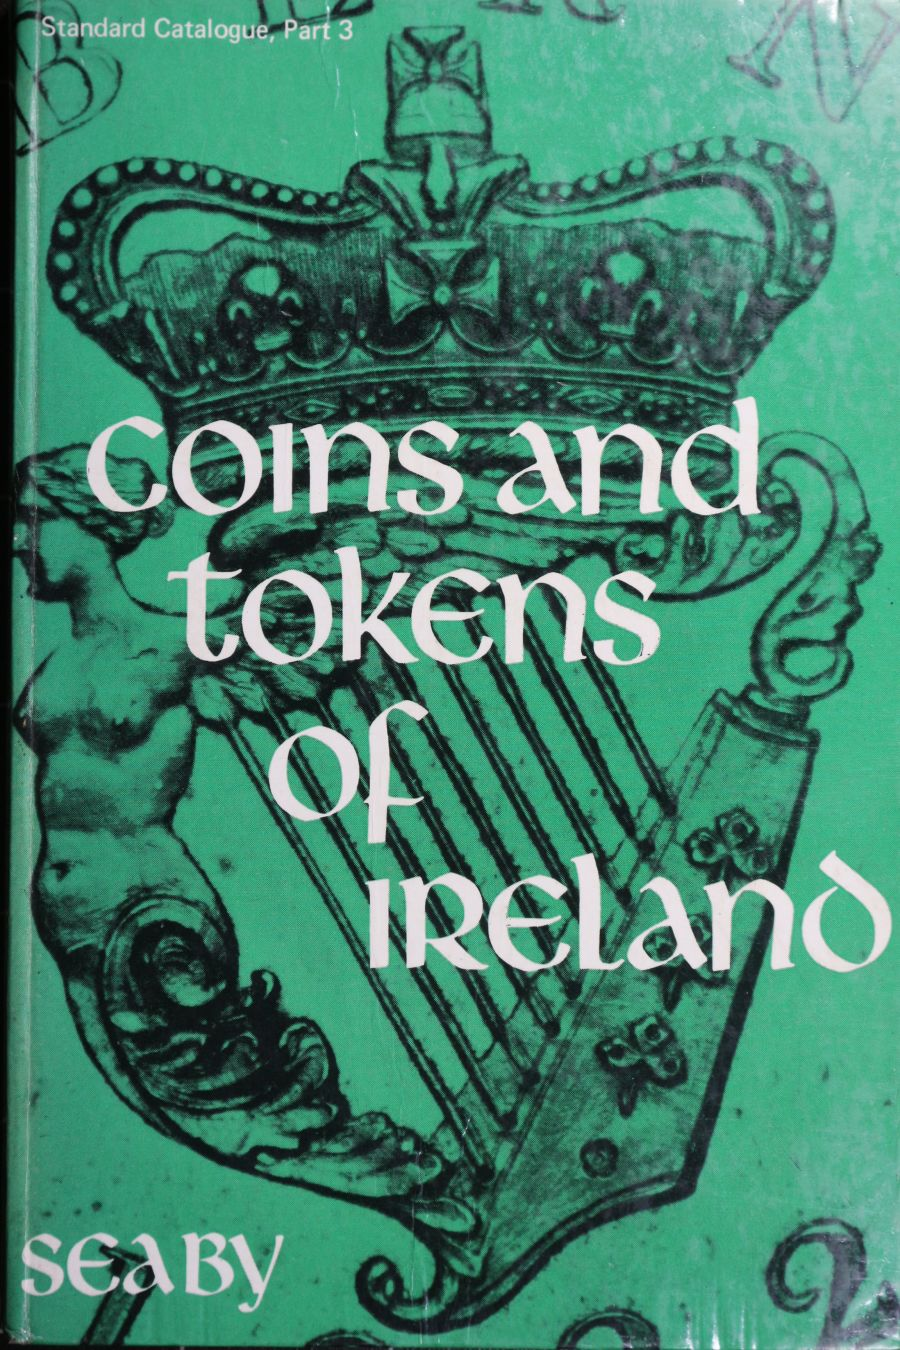 Coins and tokens of Scotland, Peter Seaby, First edition